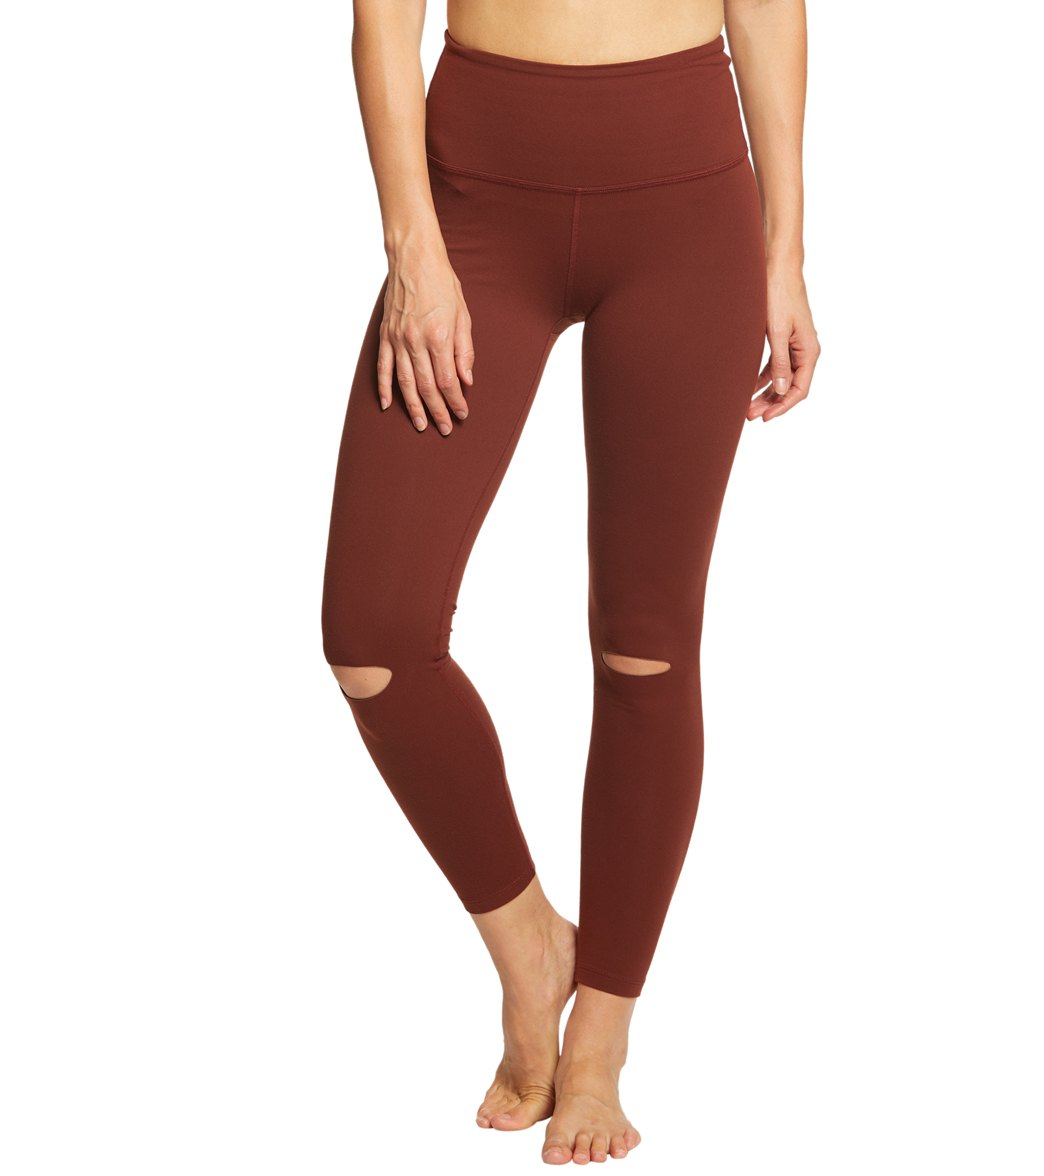 9702d1d93c Beyond Yoga Got To Slit High Waisted 7/8 Yoga Leggings at YogaOutlet.com -  Free Shipping